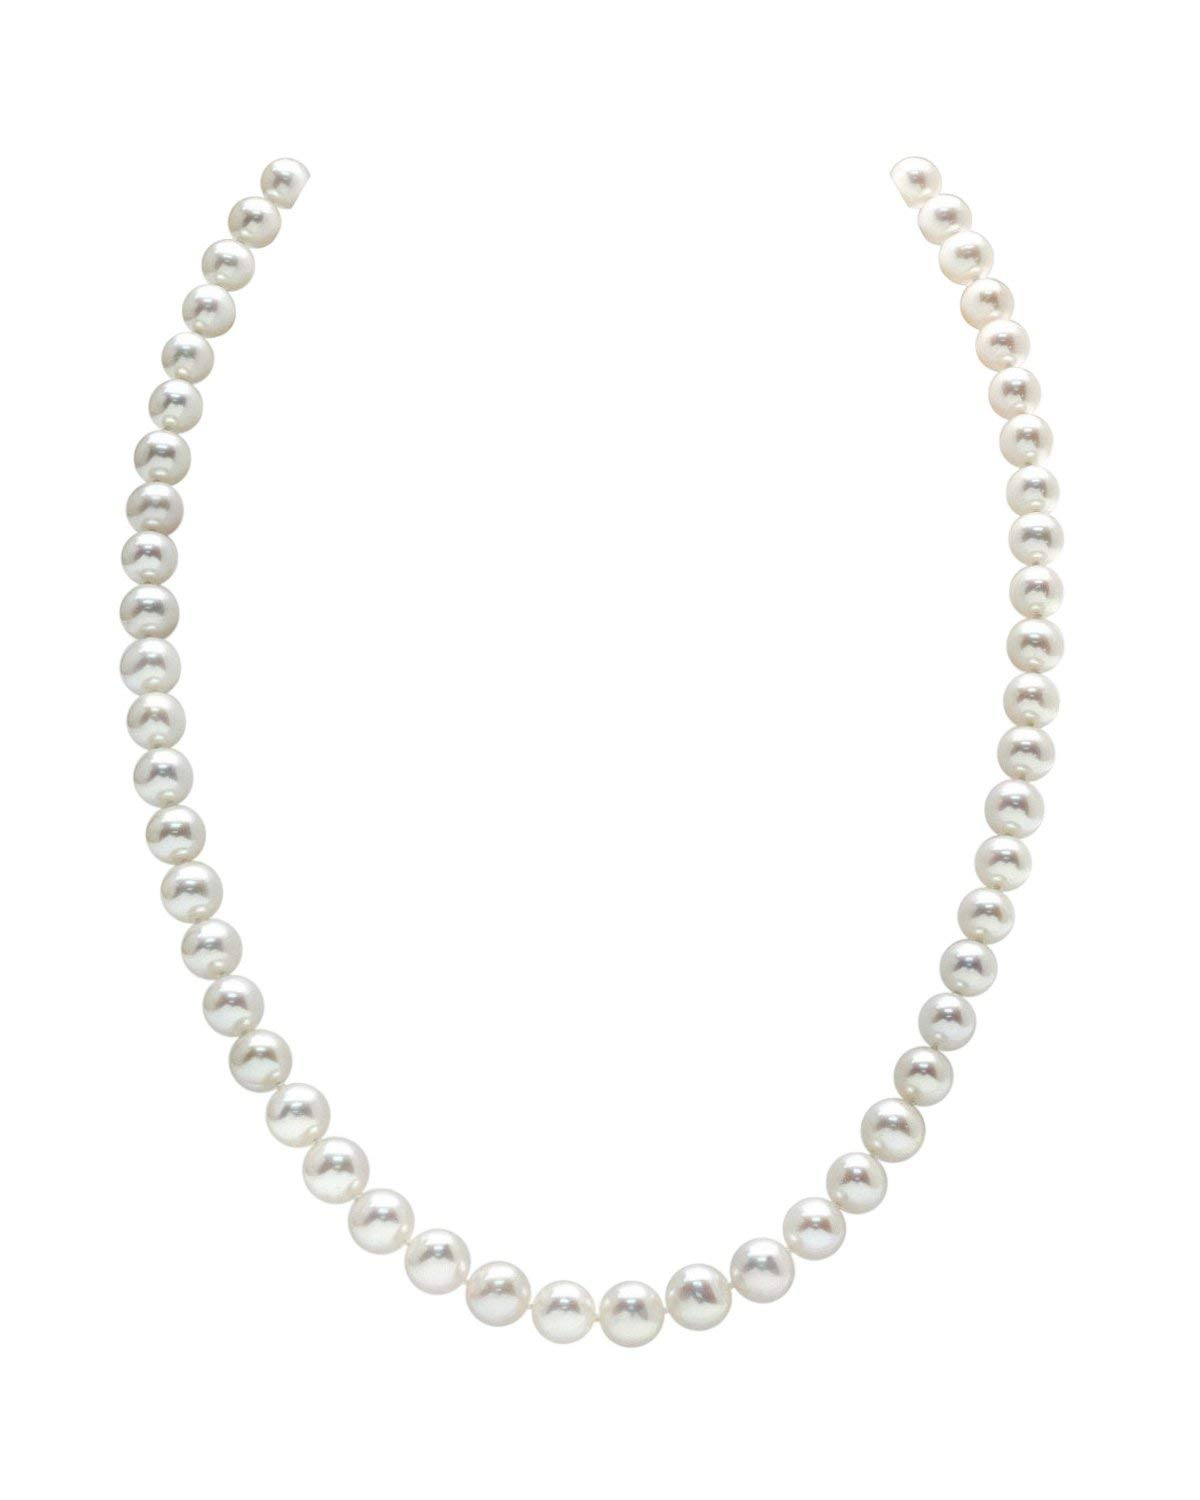 THE PEARL SOURCE 7-8mm AAA Quality Round White Freshwater Cultured Pearl Necklace for Women in 18'' Princess Length